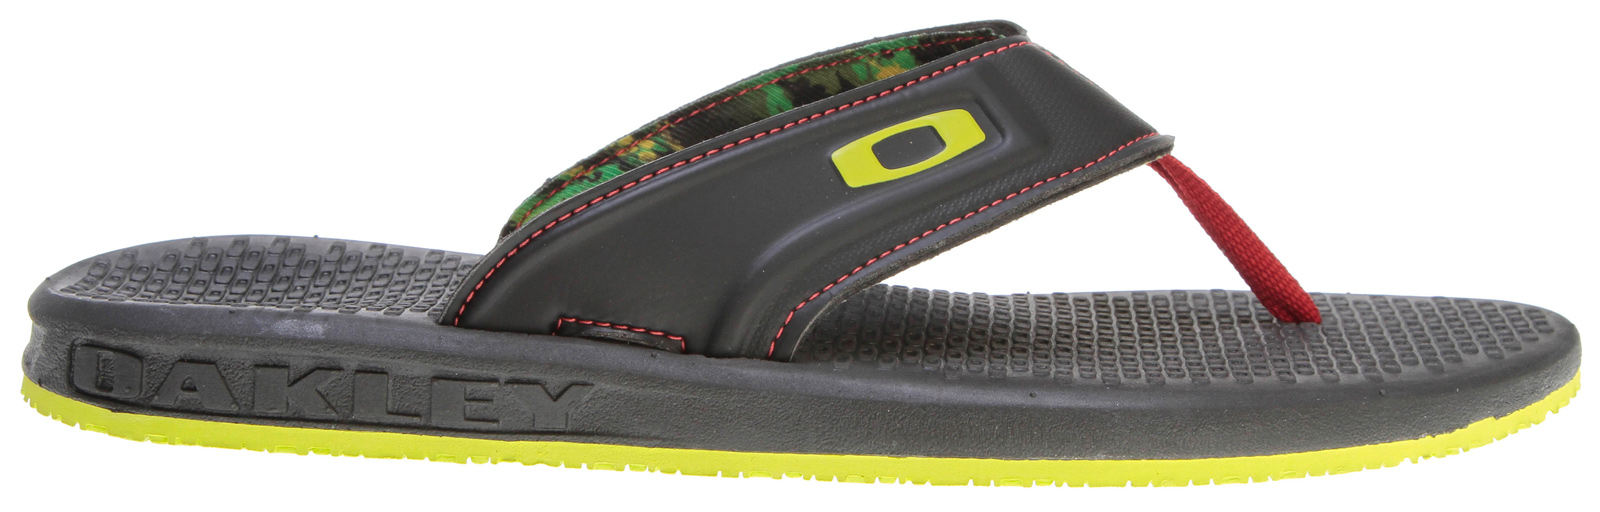 Surf Key Features of the Oakley Airlift Sandals: Upper: Soft-touch compression molded polymer strap with Velcro closure Lining: Moisture wicking textile liner with Microban® antimicrobial treatment Footbed/Midsole: Compression molded EVA deck with custom repeating Icon texture Outsole: Lightweight compression EVA - $20.95